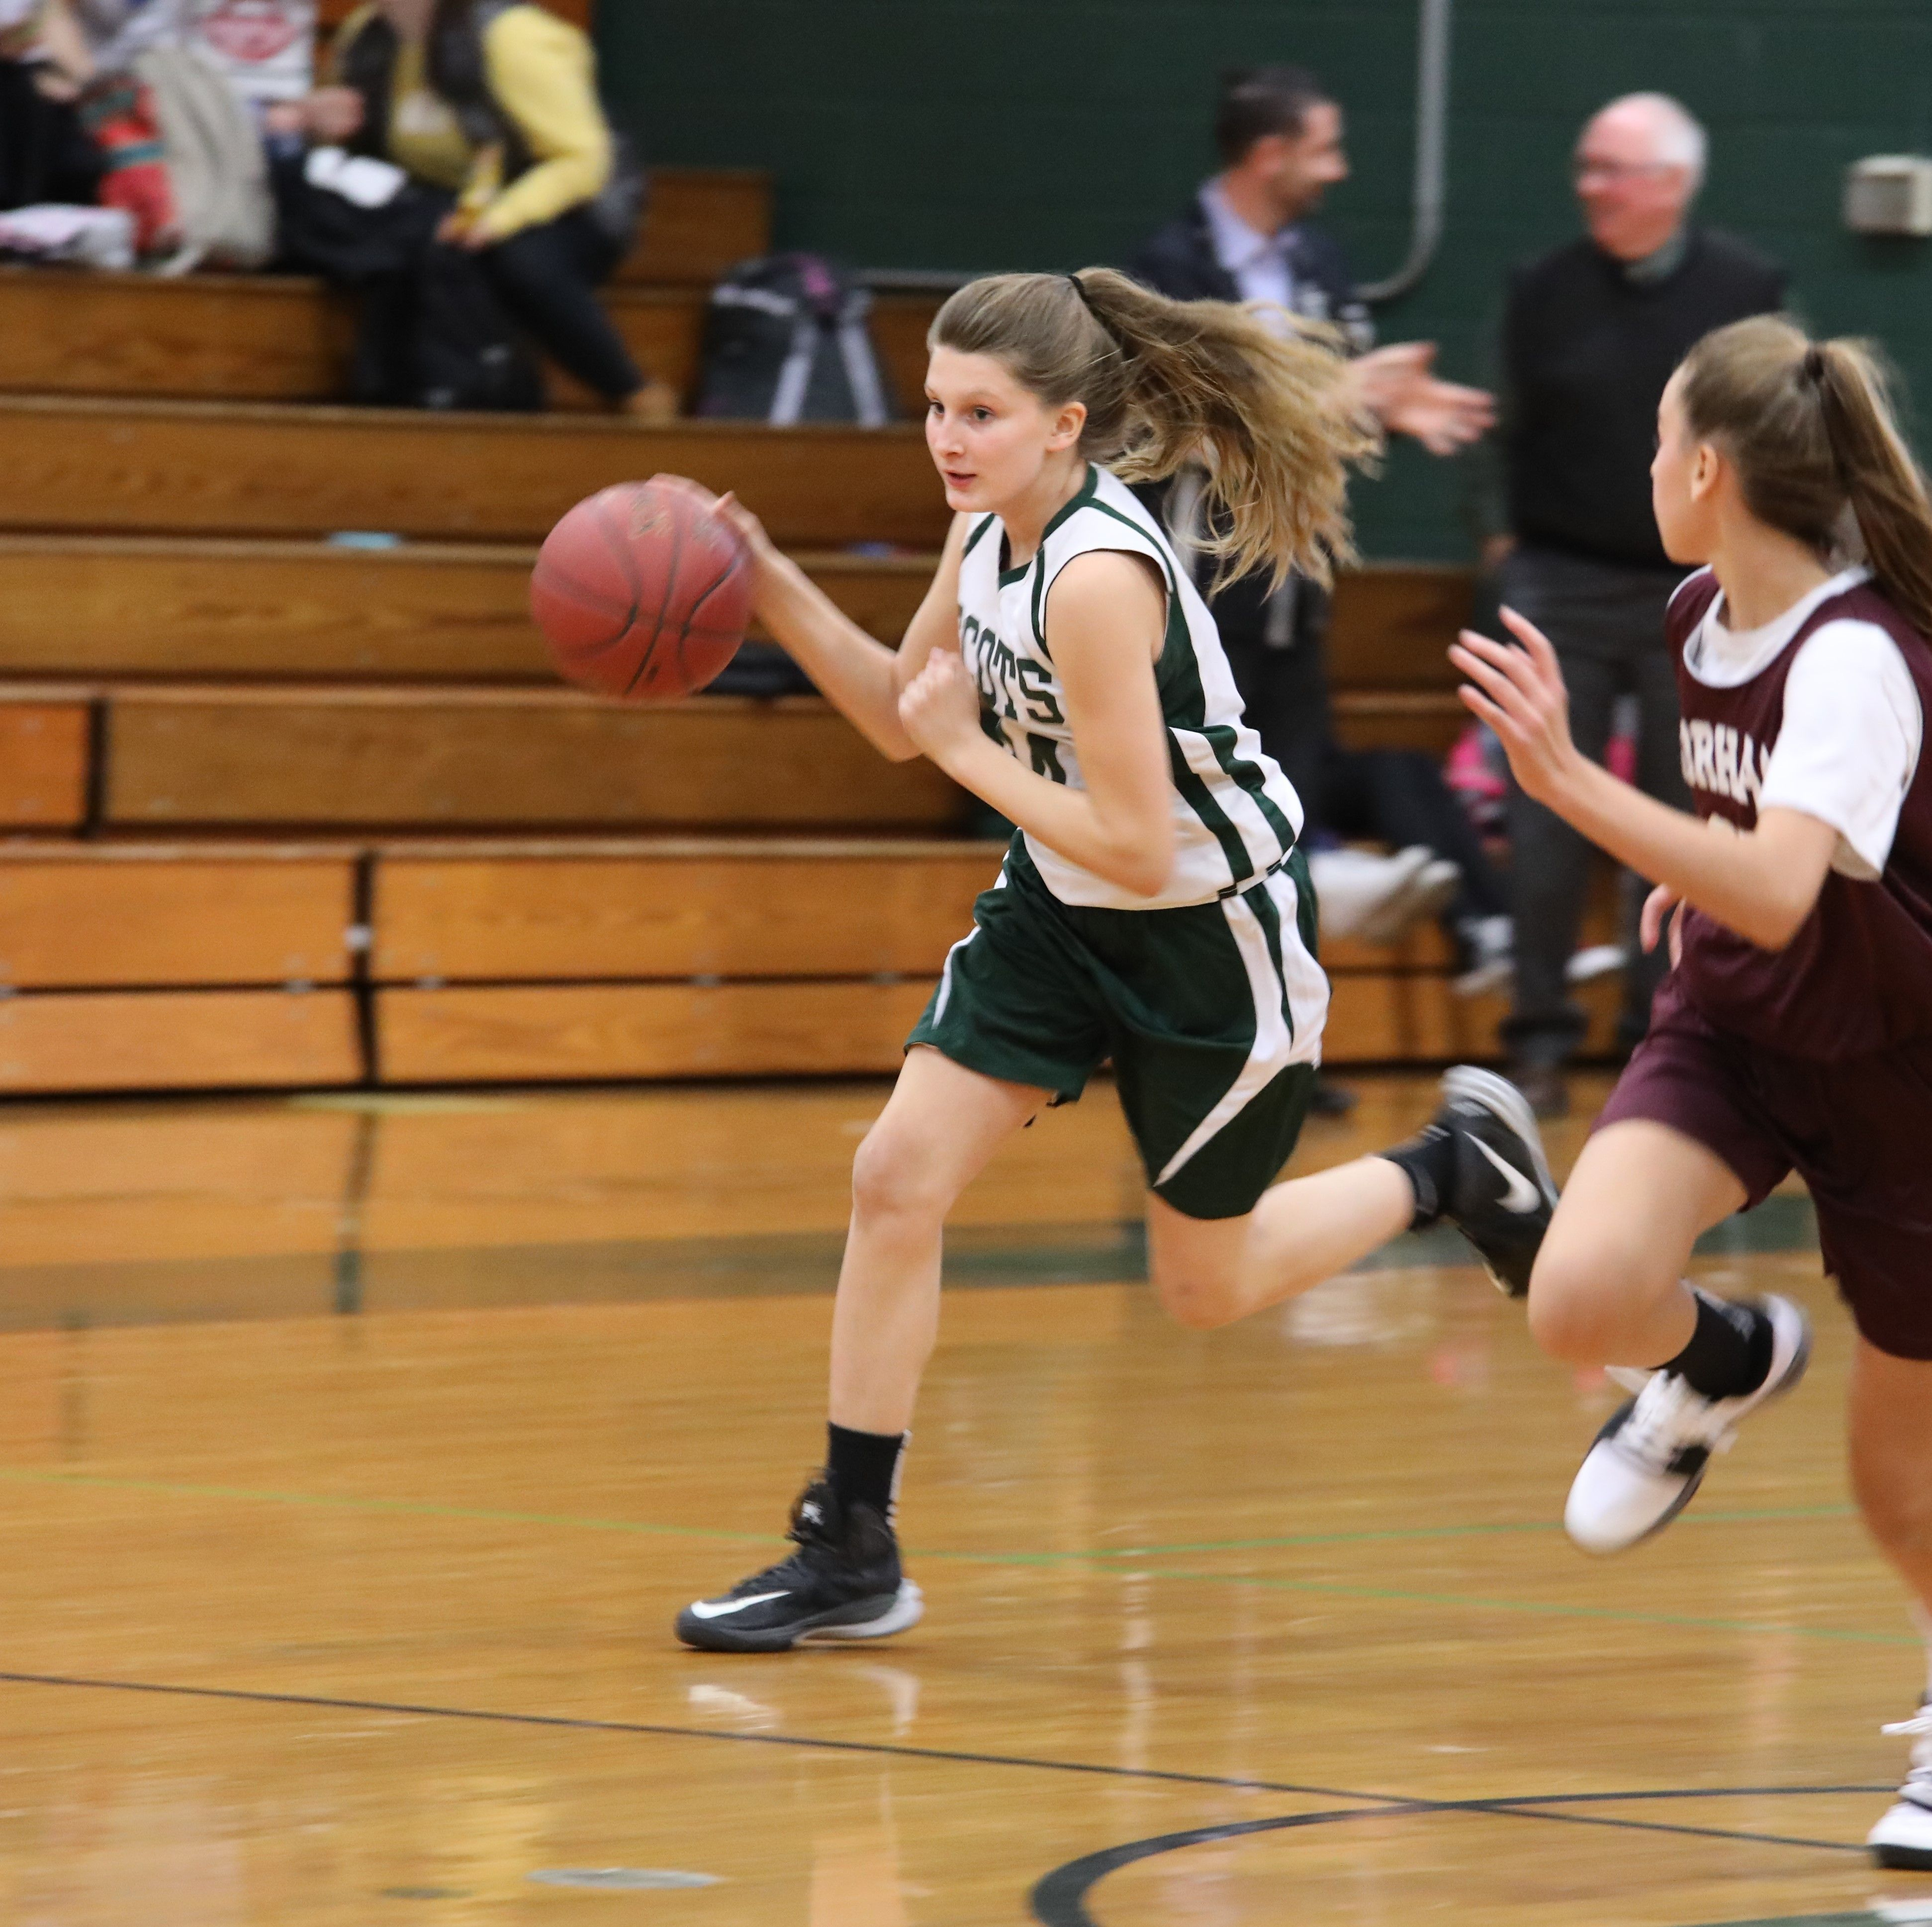 Girls Middleschool Action Is Back At Home Tonight Hosting Scarborough And As Always We Wish Them The Best Of Basketball Girls Basketball Photography Athlete